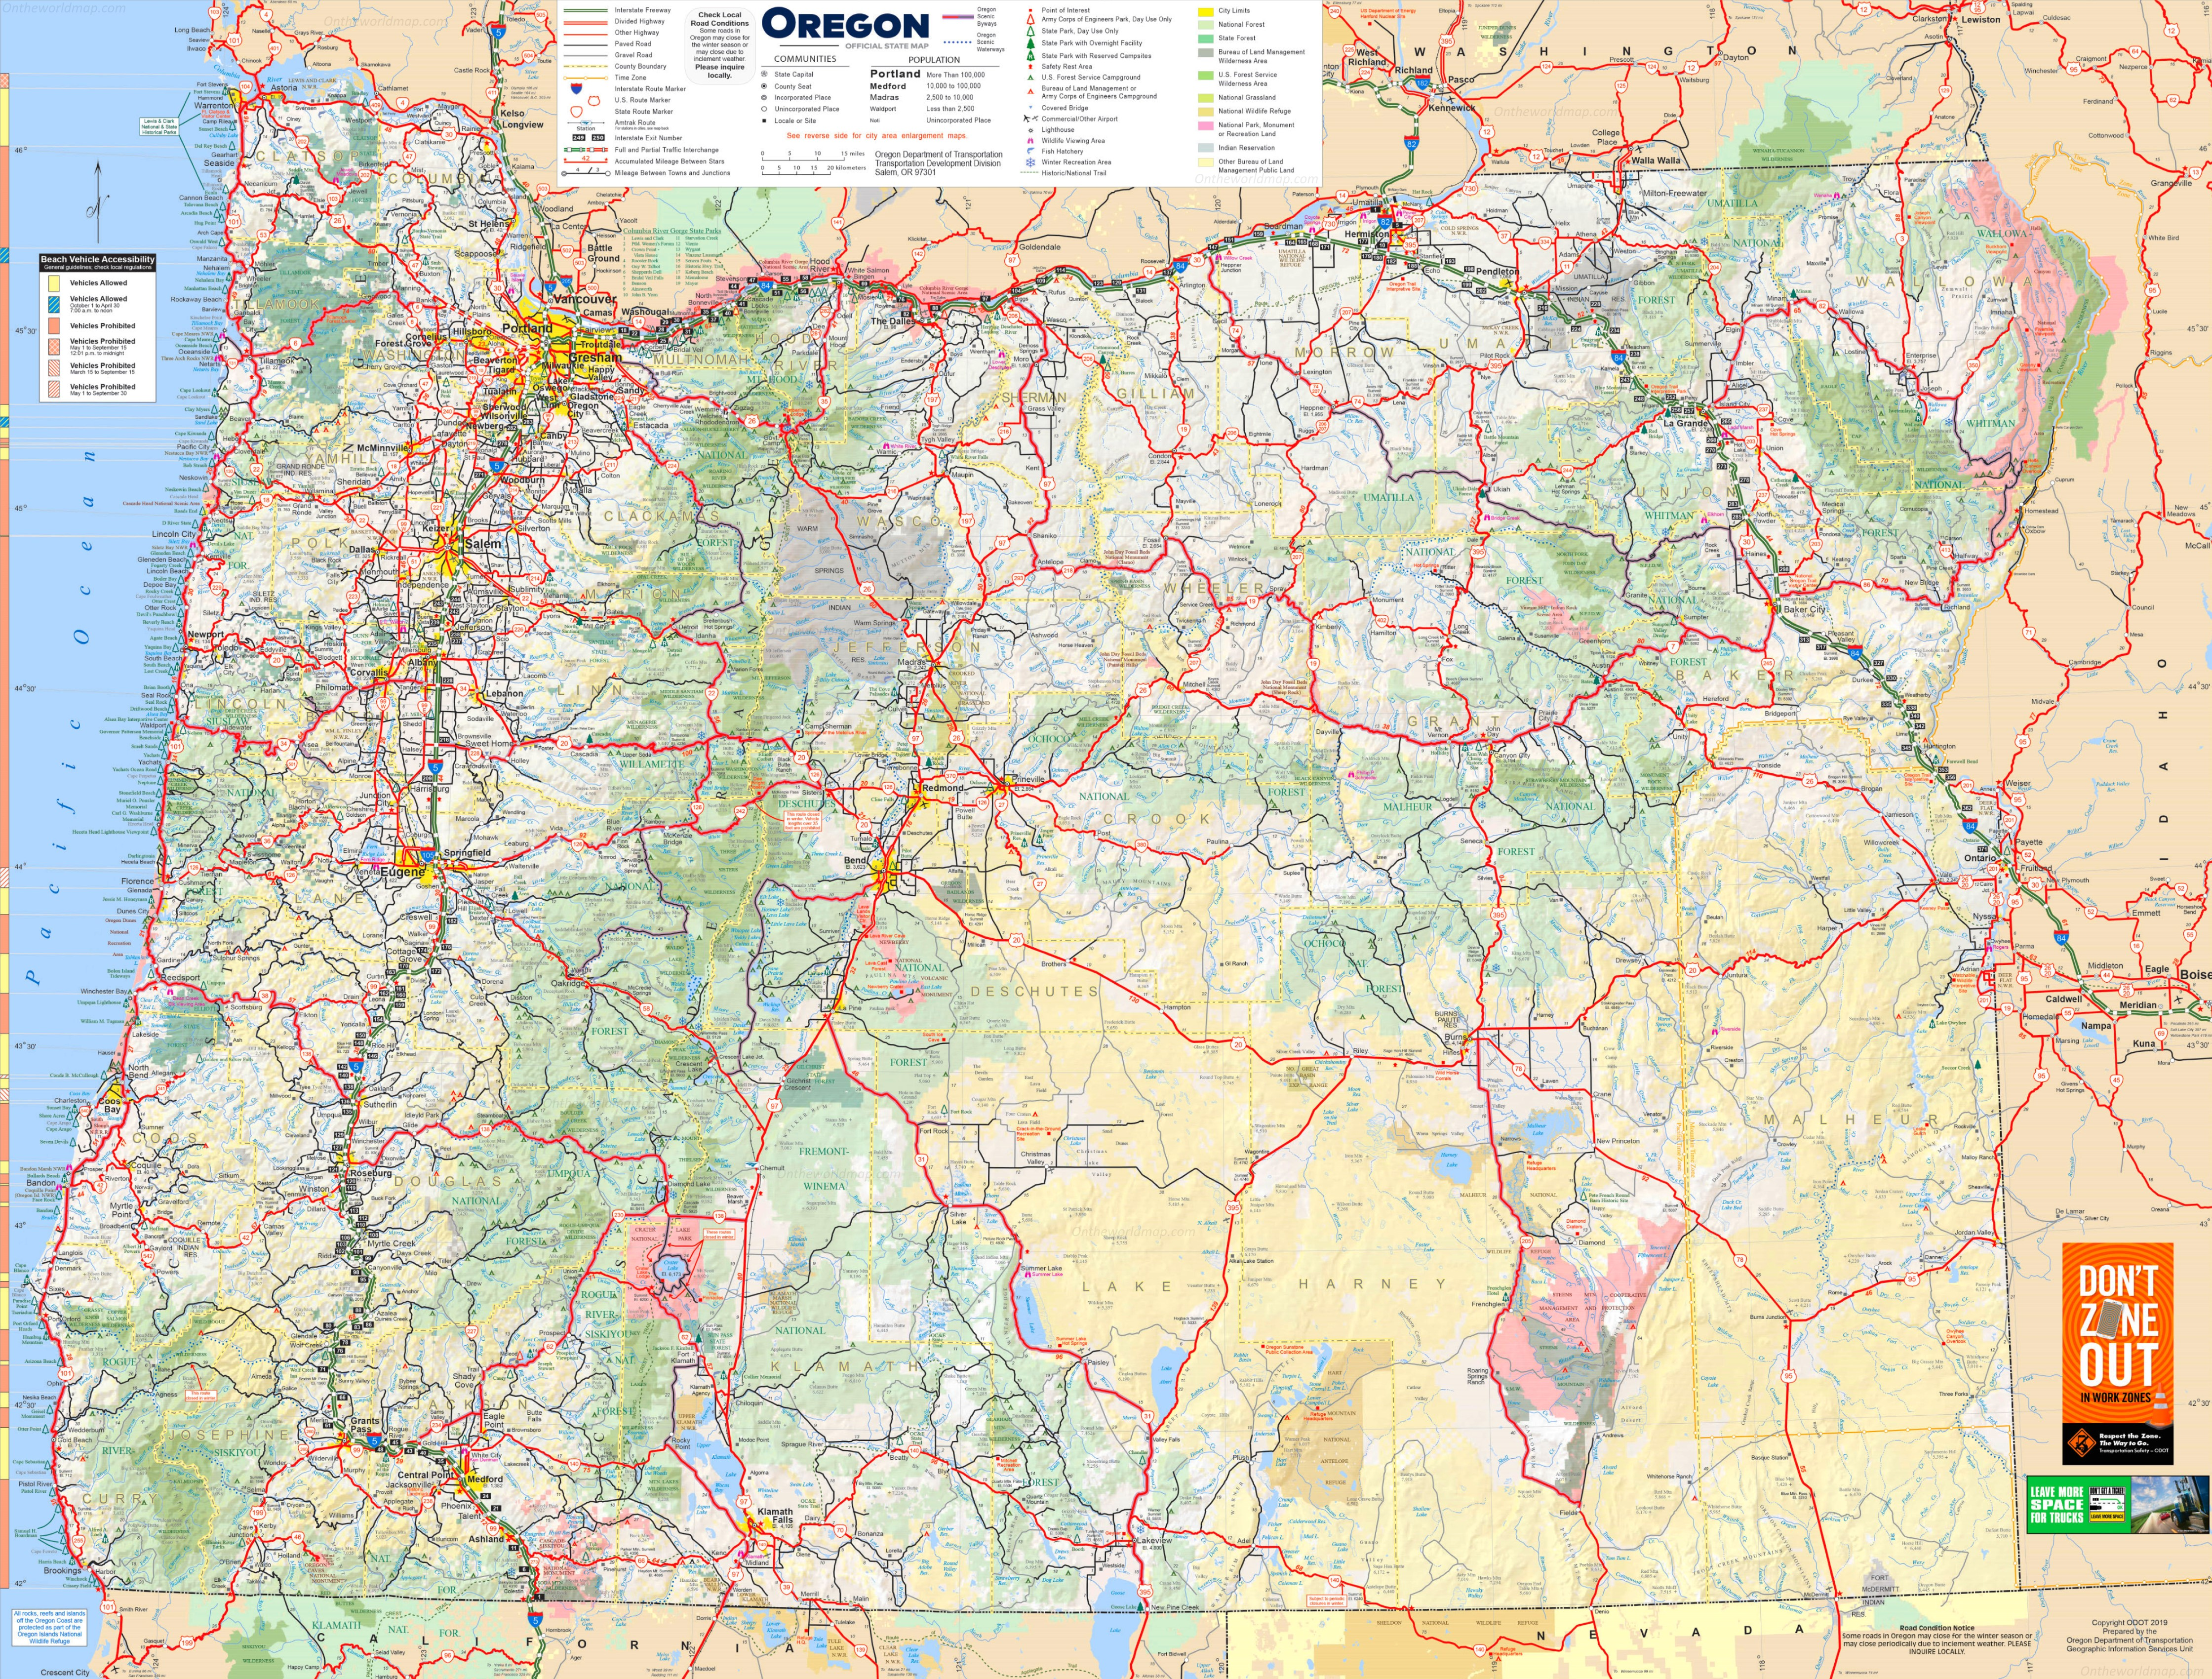 Detailed Map Of Oregon Large detailed tourist map of Oregon with cities and towns